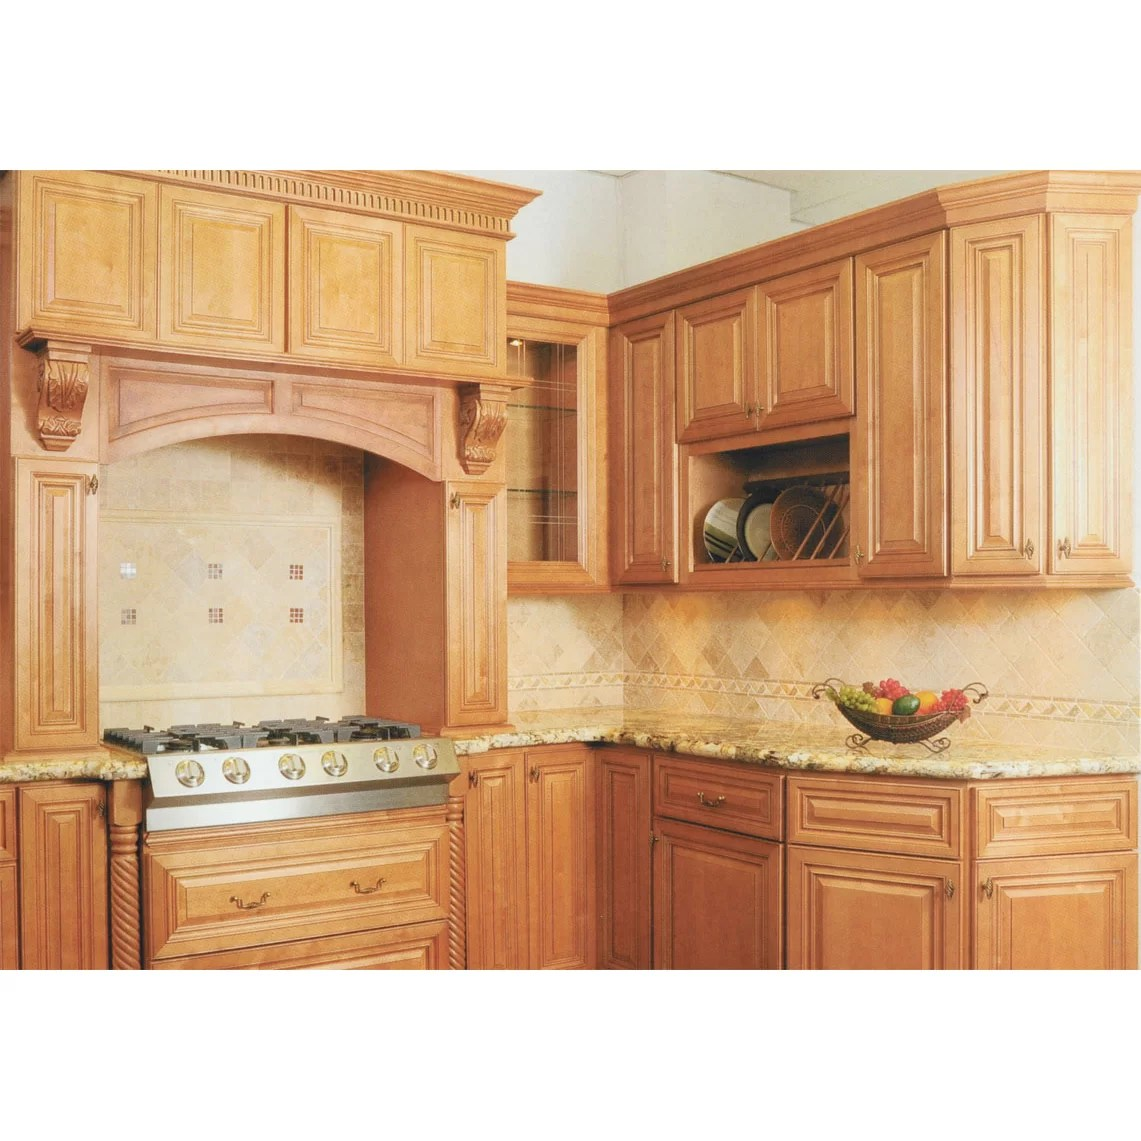 Century Home Living 30 x 36 Kitchen Wall Cabinet